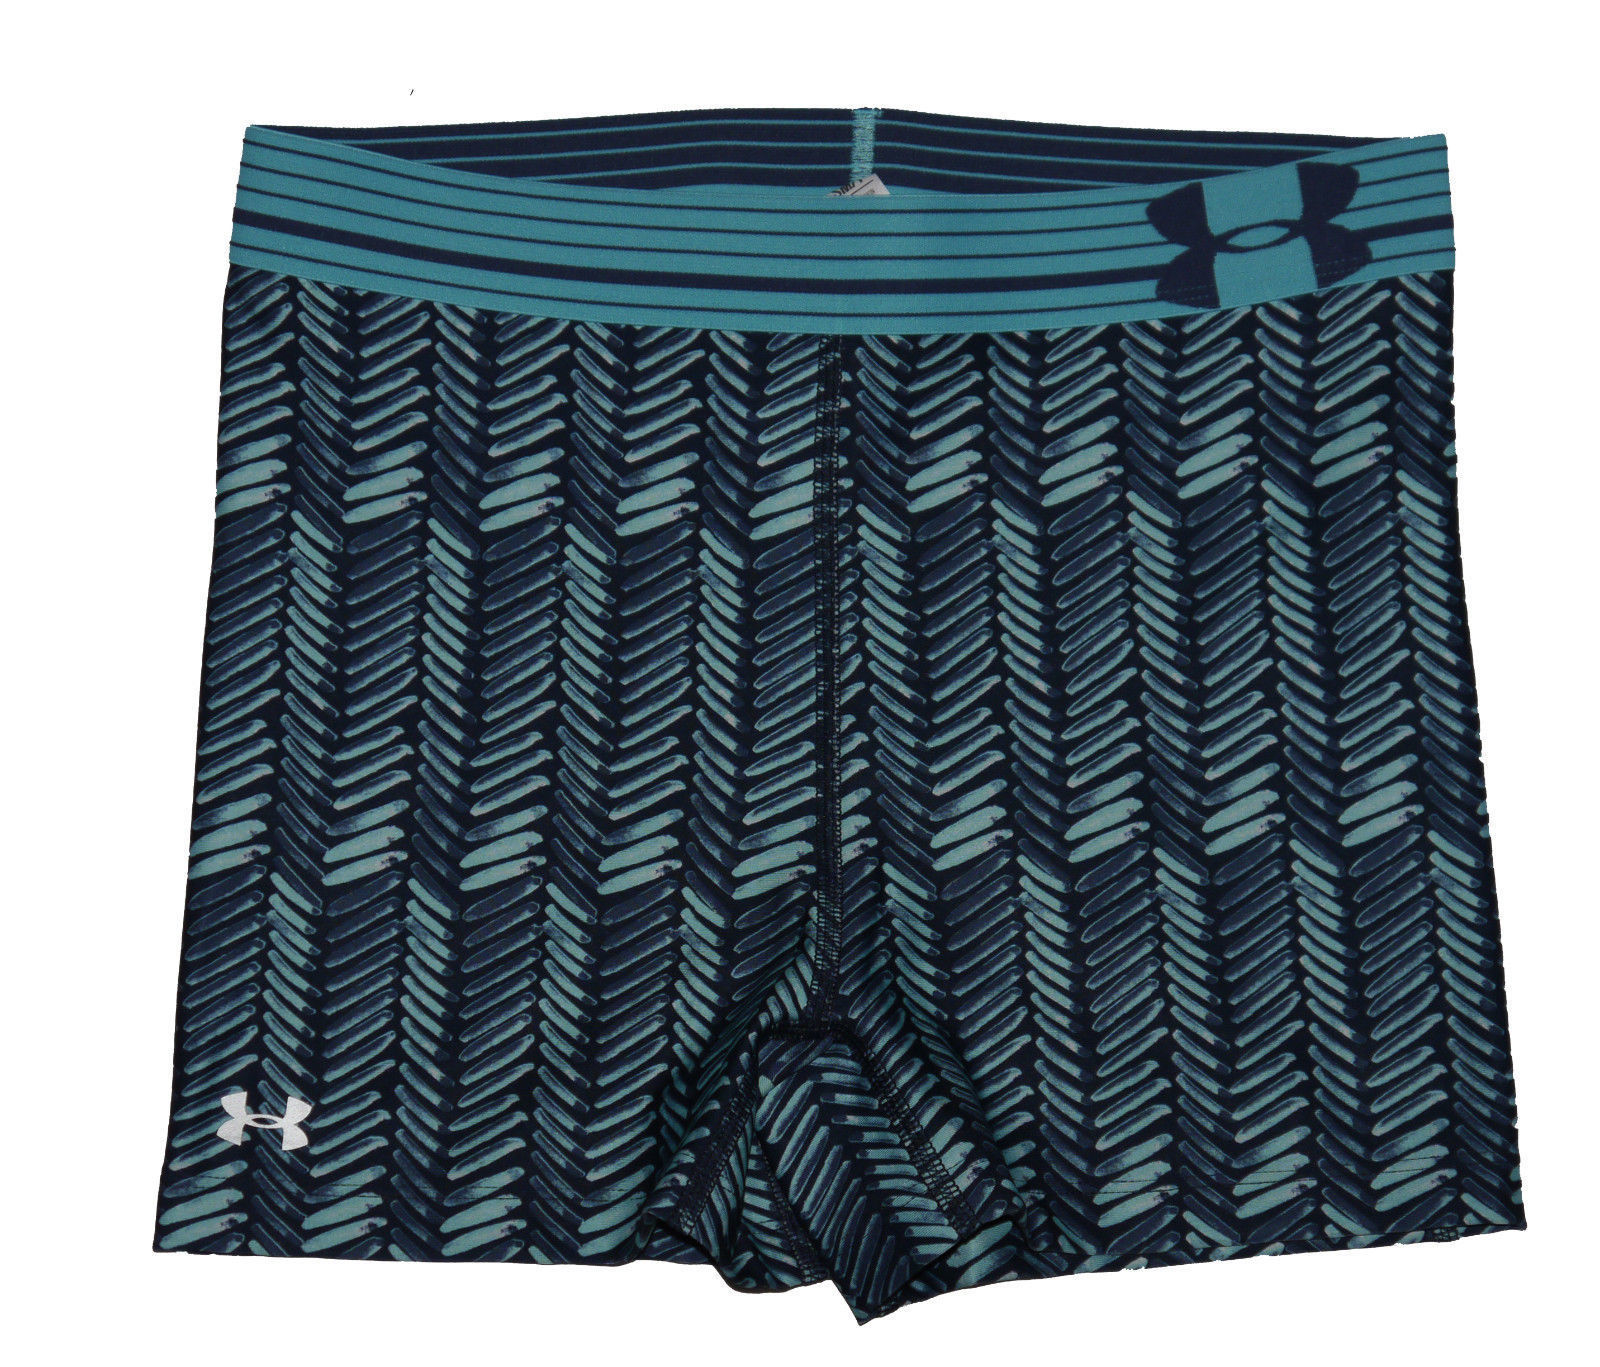 "Under Armour Women's Jazz Blue/Midnight Navy 3"" Shorty Compression Shorts (Small) 13266"